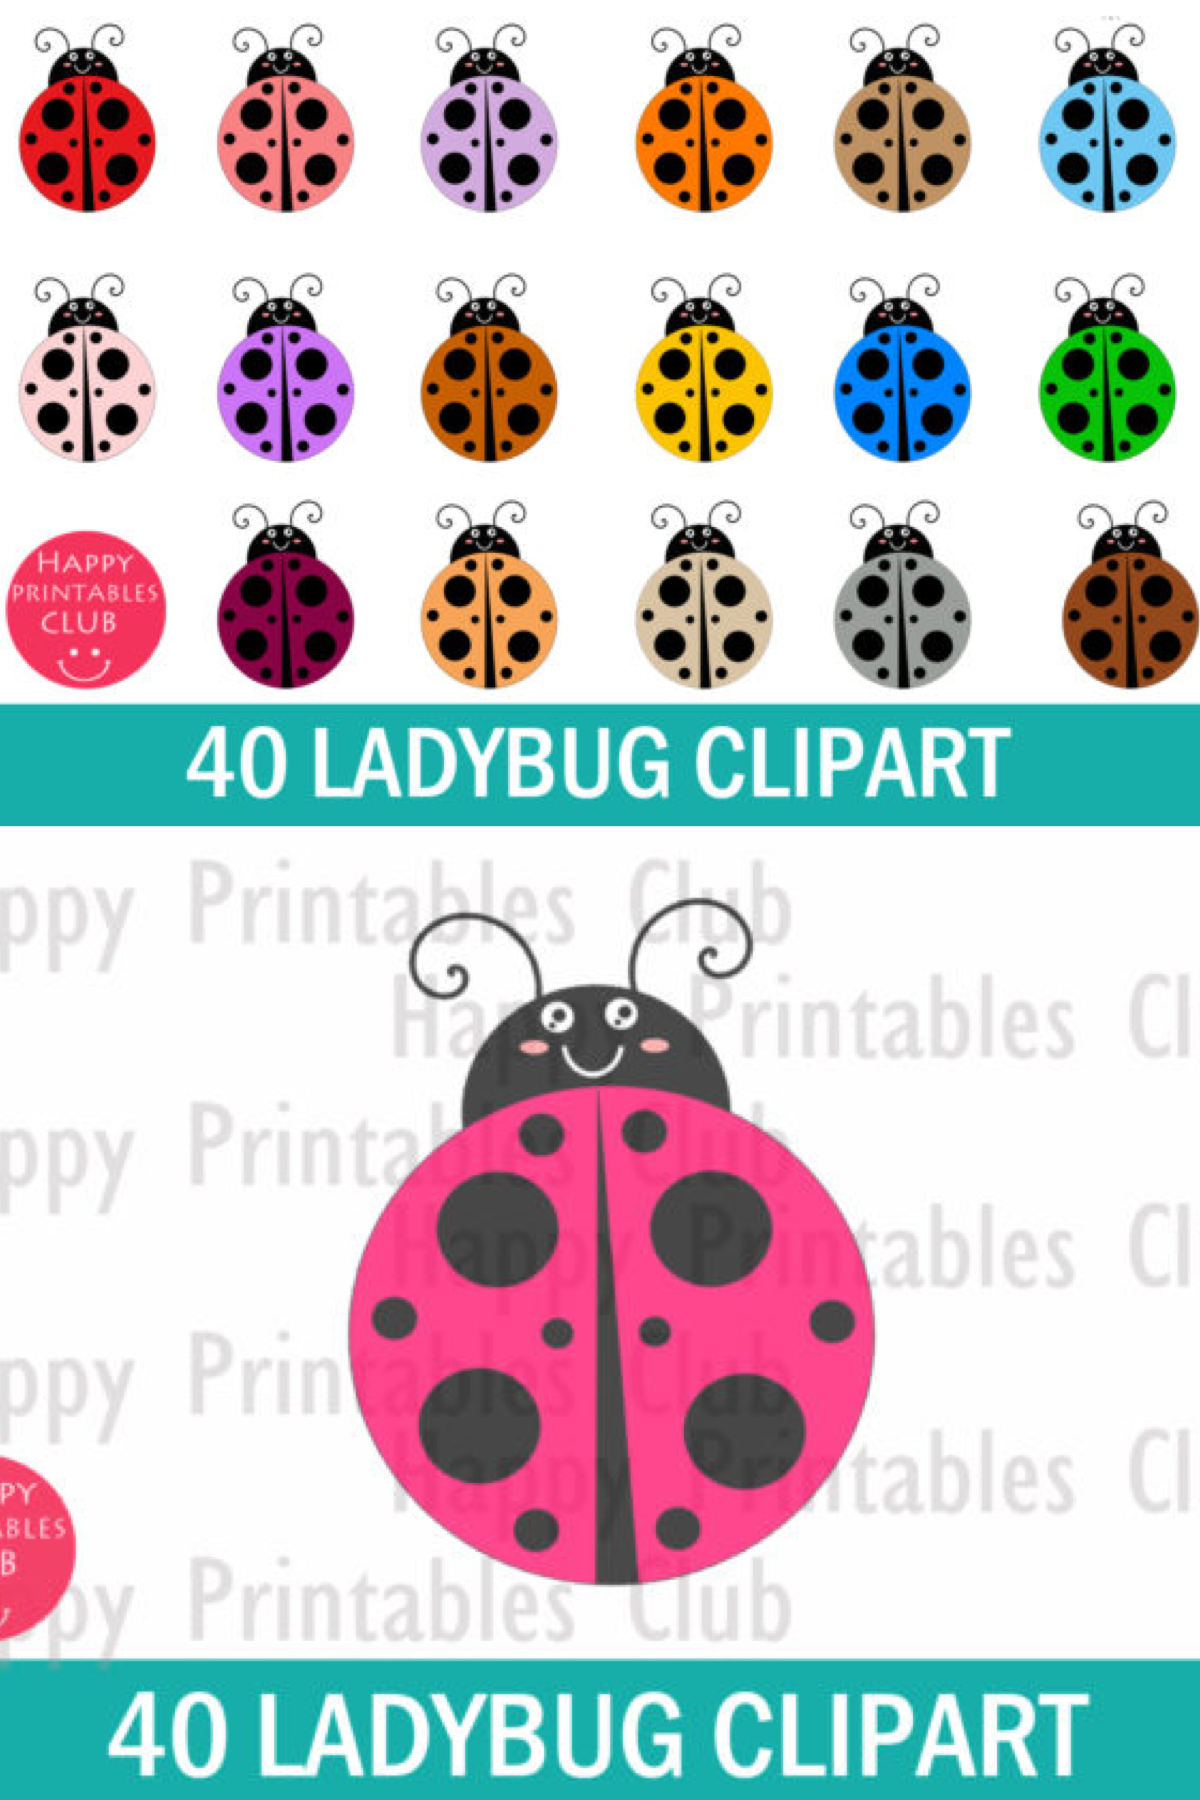 Lady Bug Clipart Cute Lady Bug Clipart Graphic By Happy